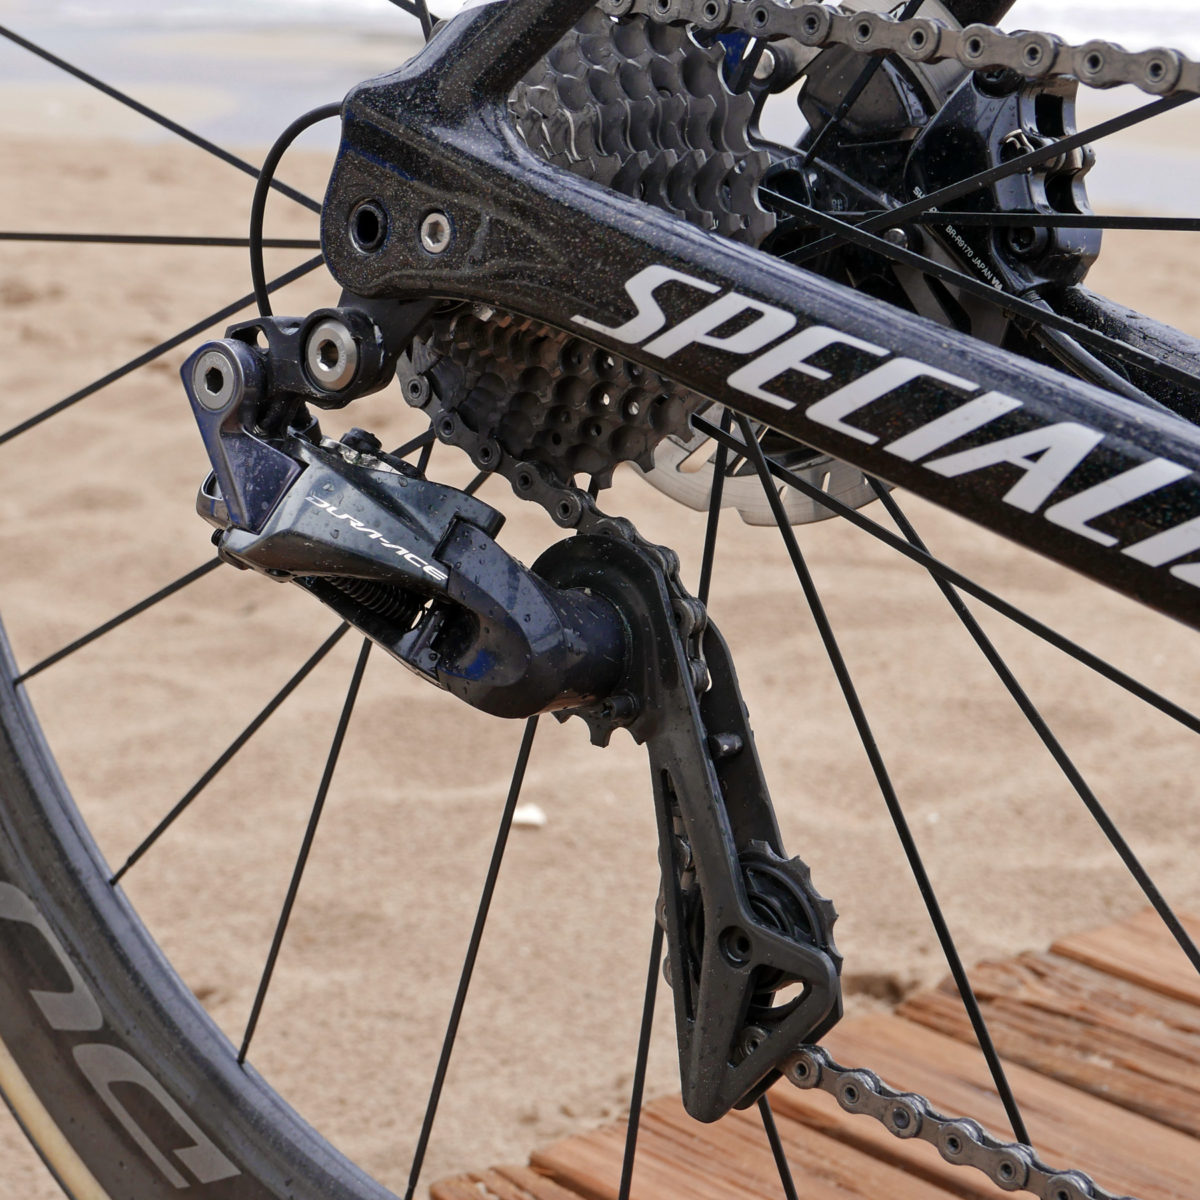 b056043501f First Impressions: Shimano Dura-Ace R9100 series' new Di2 R9170 disc brake  groupset